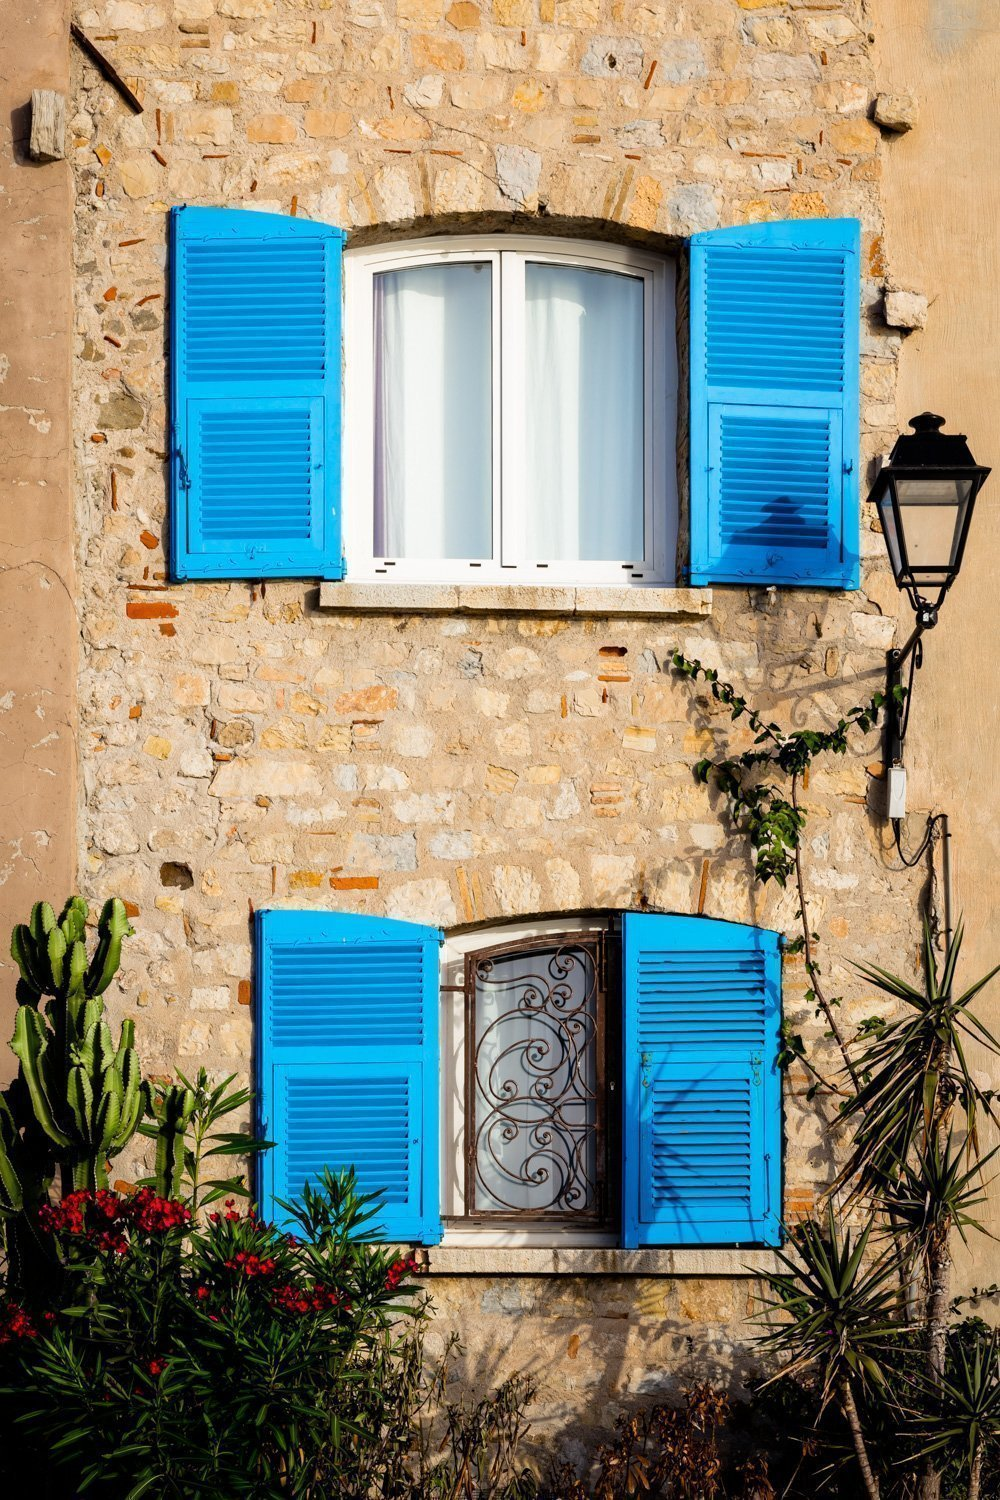 Blue_Shutters_Antibes_French_Riviera_Provence_Alpes_Côte-dAzur_South_France_Colour